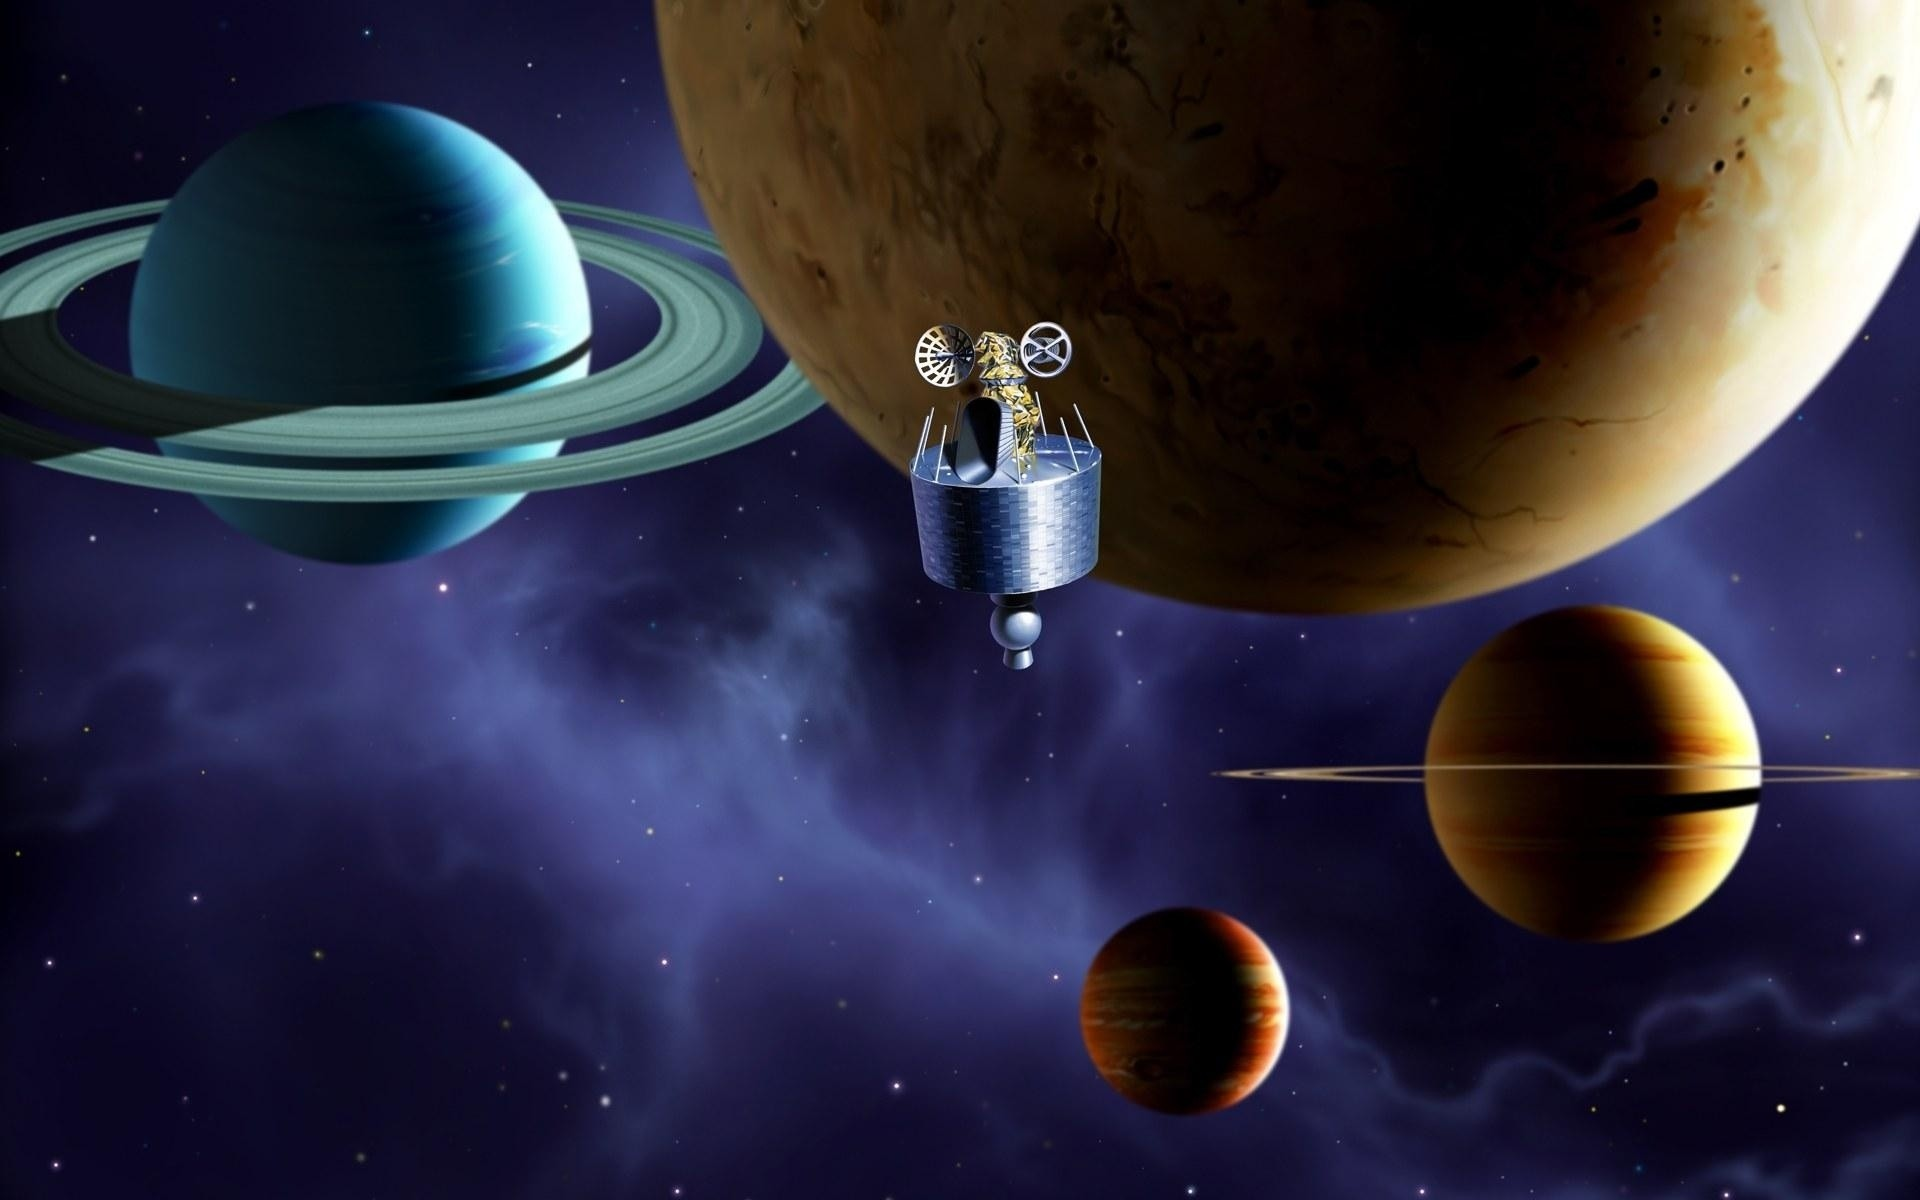 space moon planet astronomy jupiter galaxy science ball-shaped mars solar spacecraft saturn exploration astrology cosmos satellite orbit sphere outer